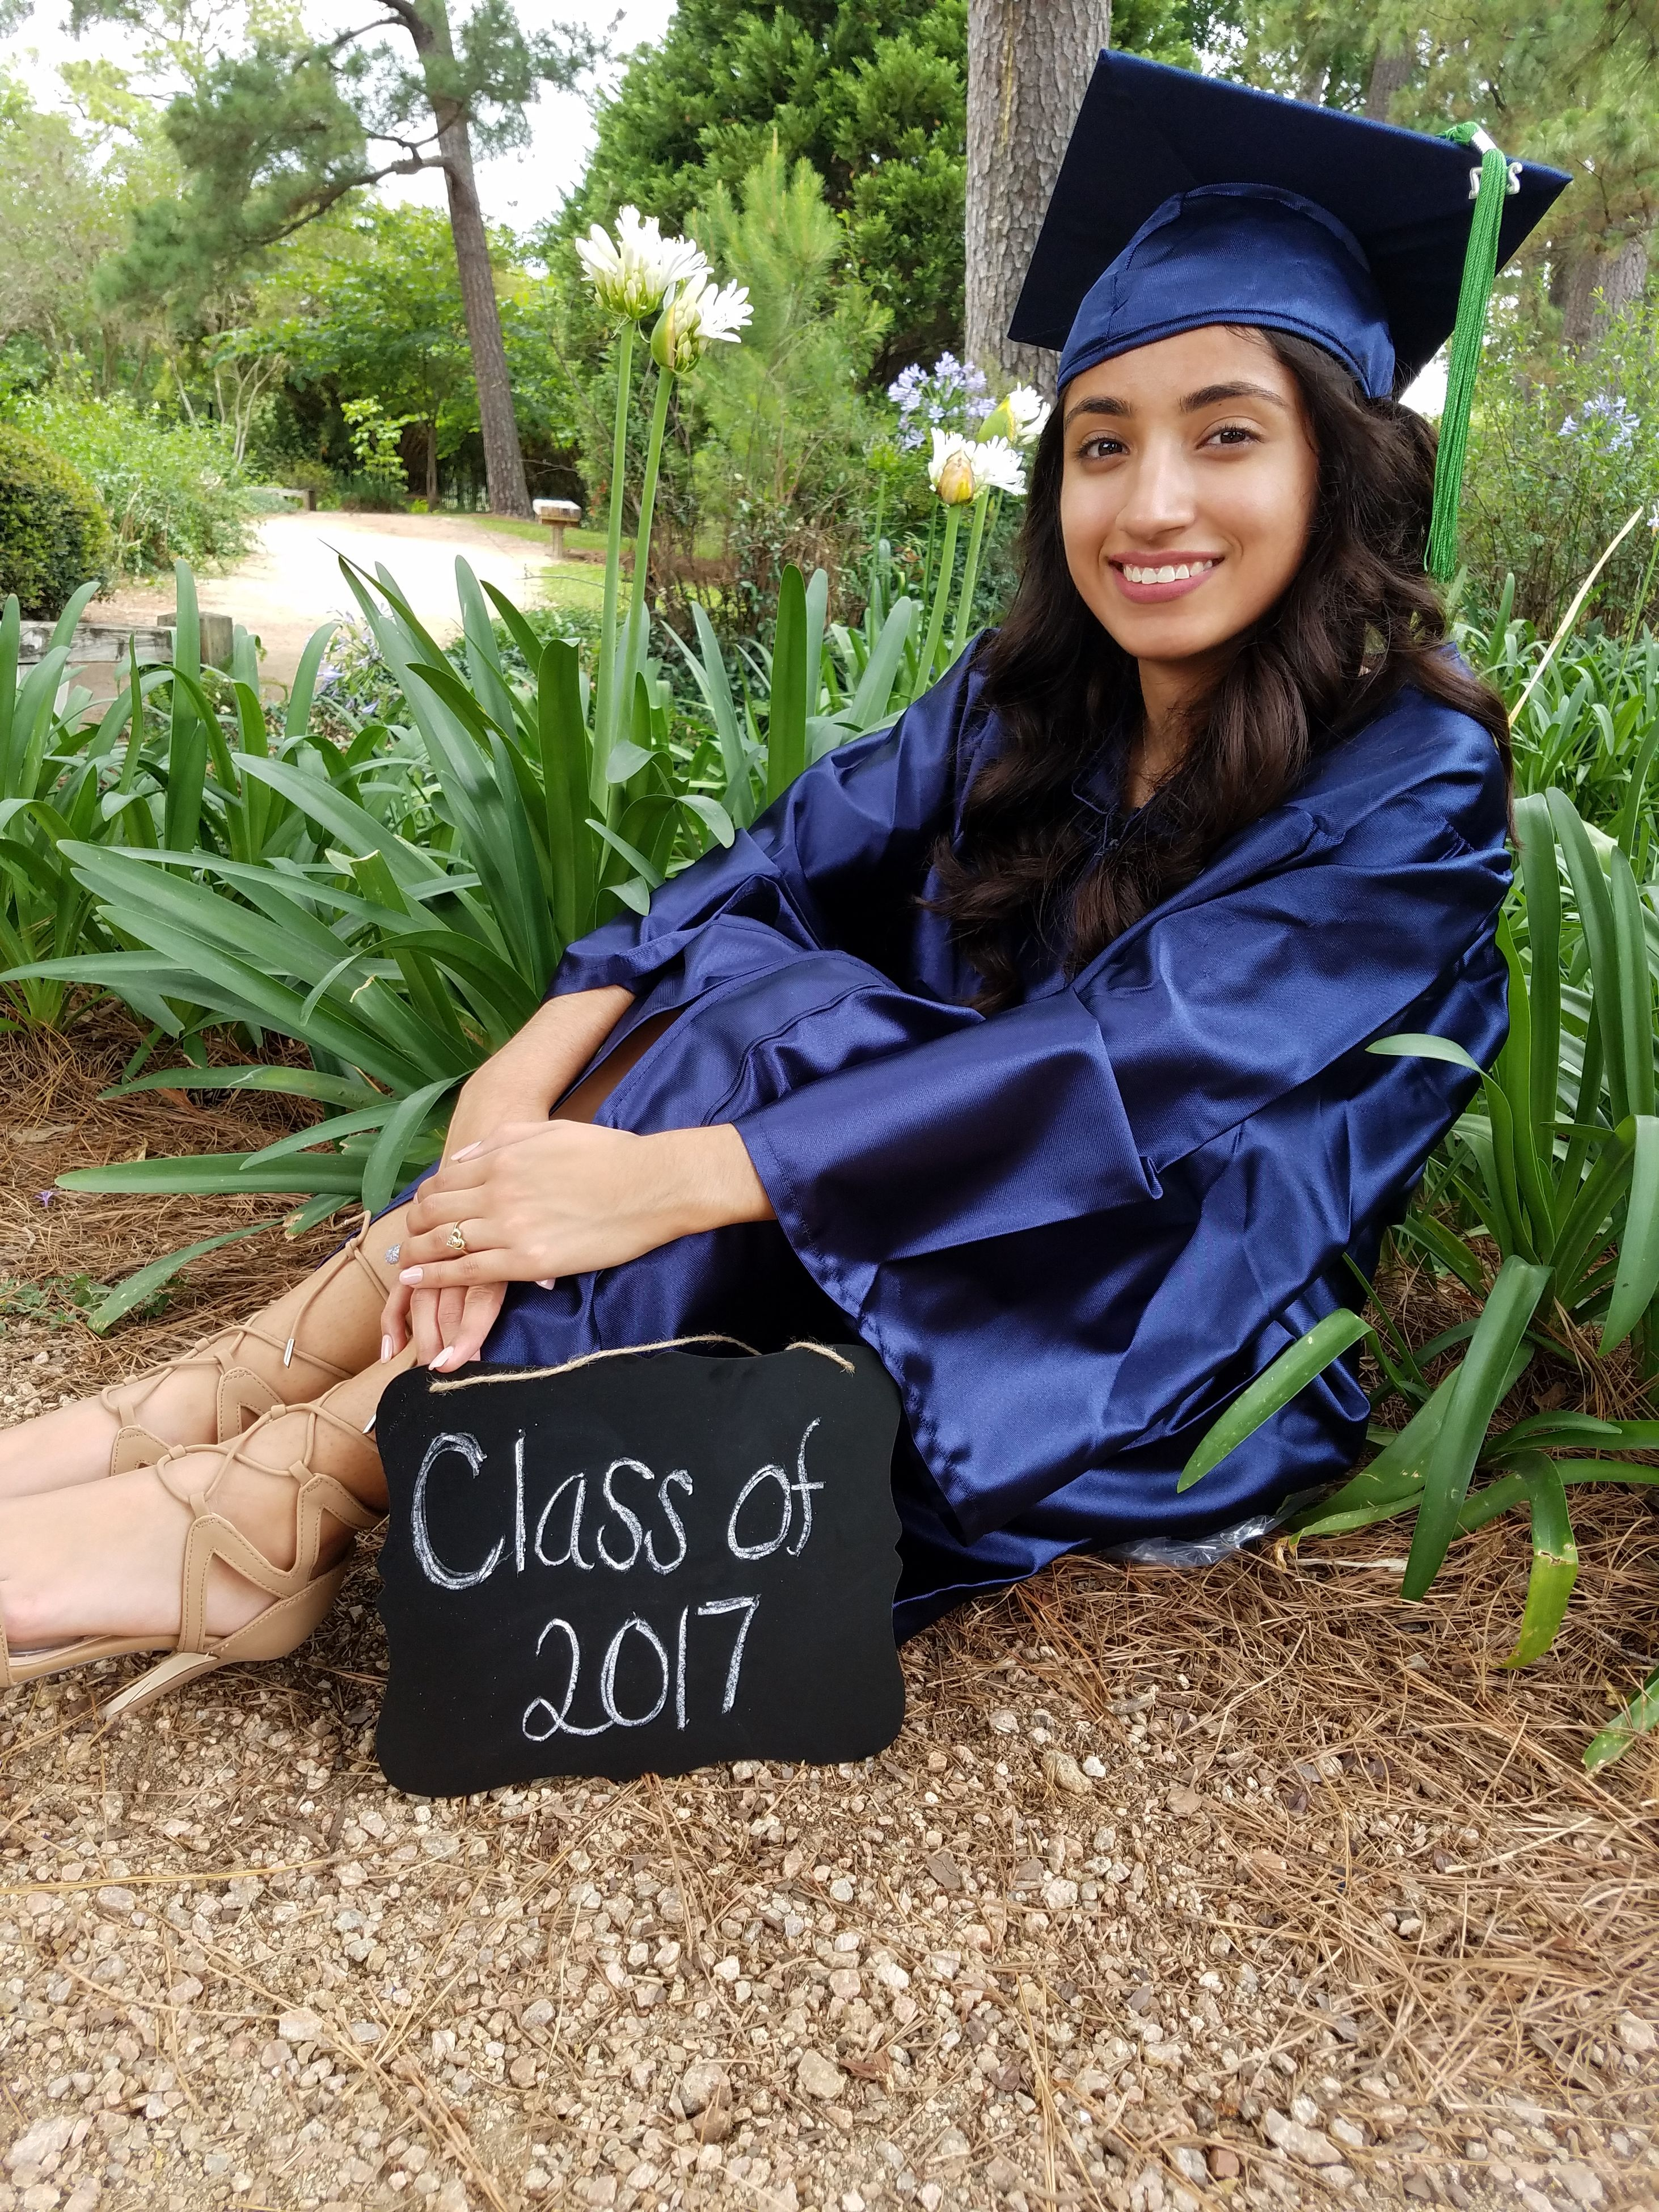 mortarboard, graduation, achievement, real people, looking at camera, one person, happiness, smiling, education, lifestyles, portrait, young adult, young women, outdoors, cheerful, day, people